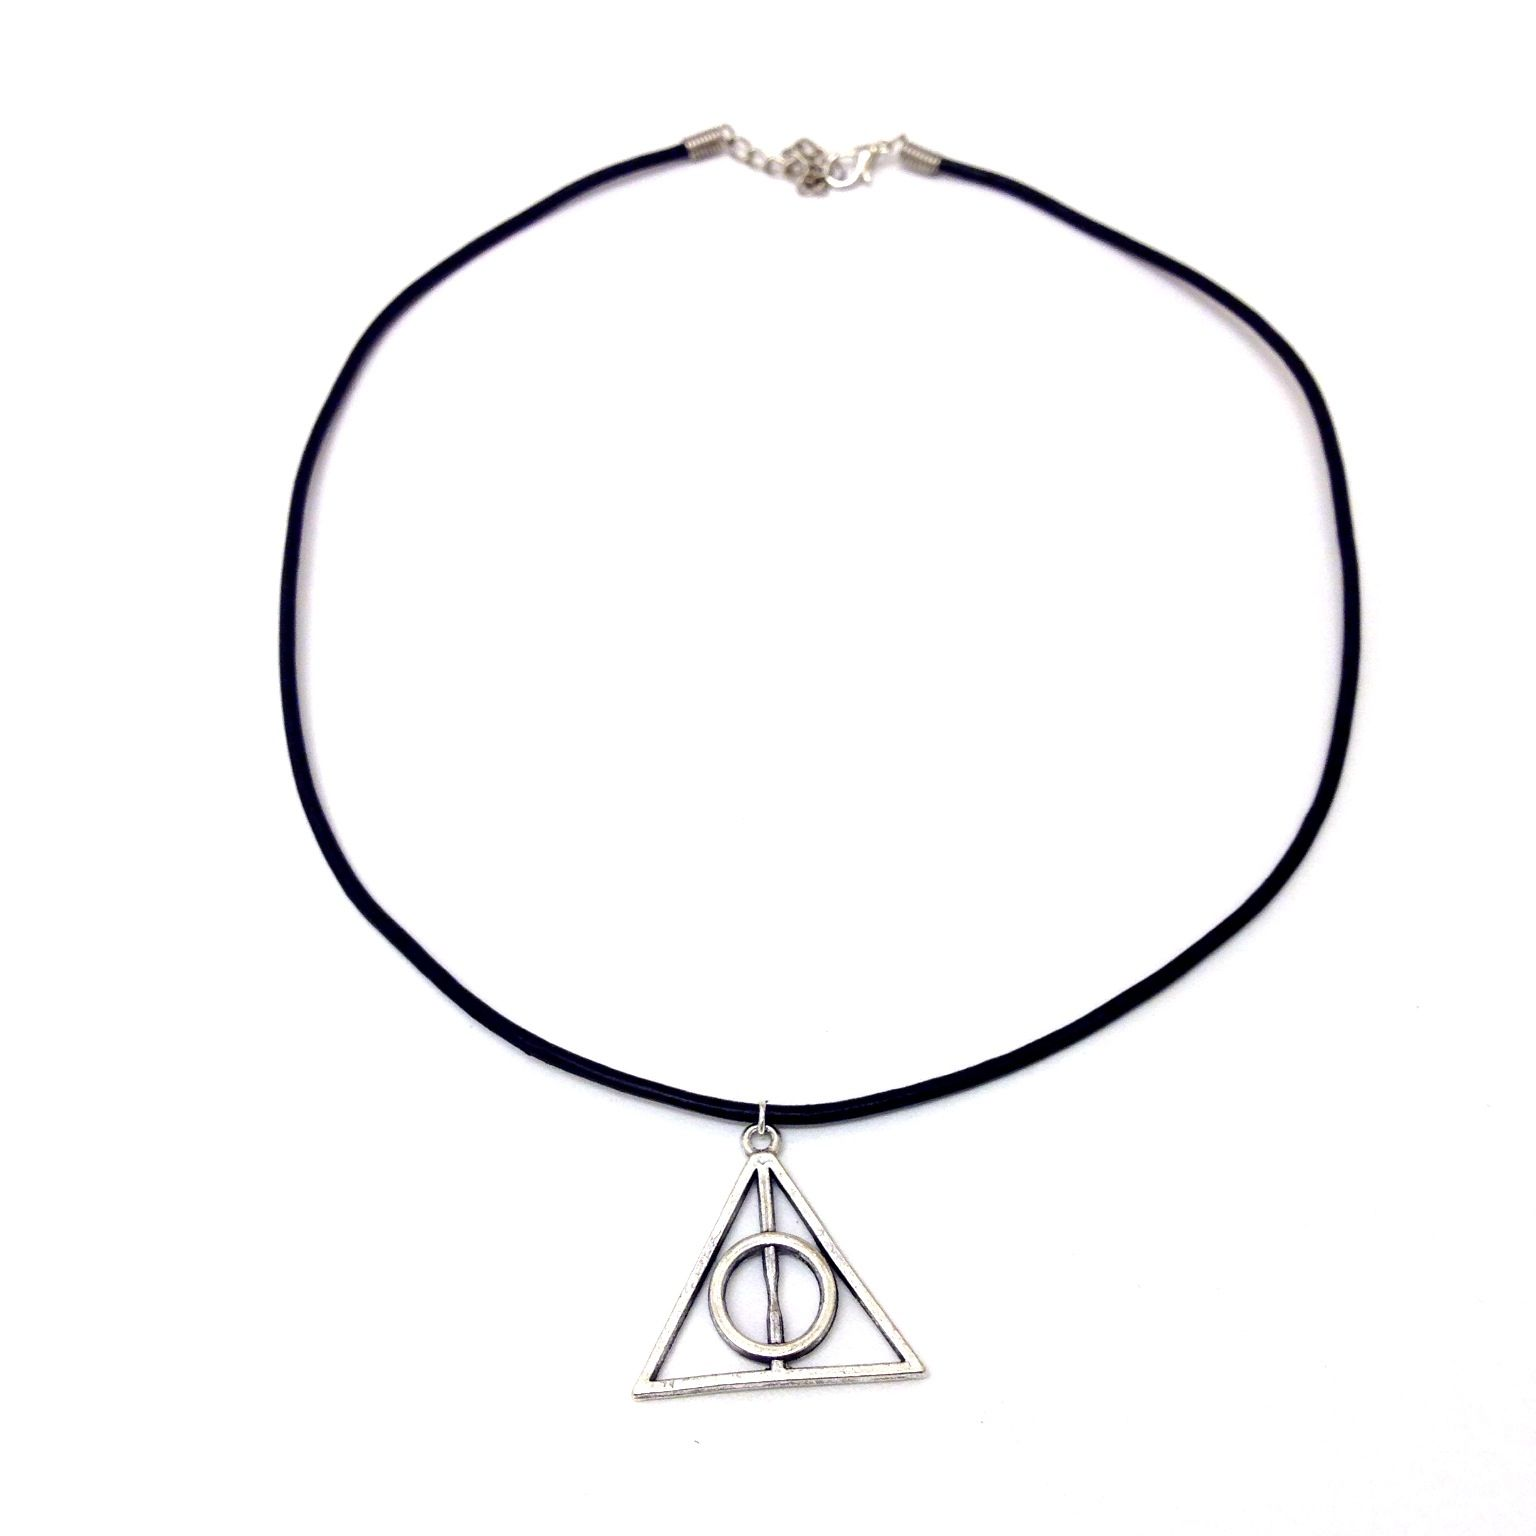 Deathly hallows necklace4 prettytwisted necklace http